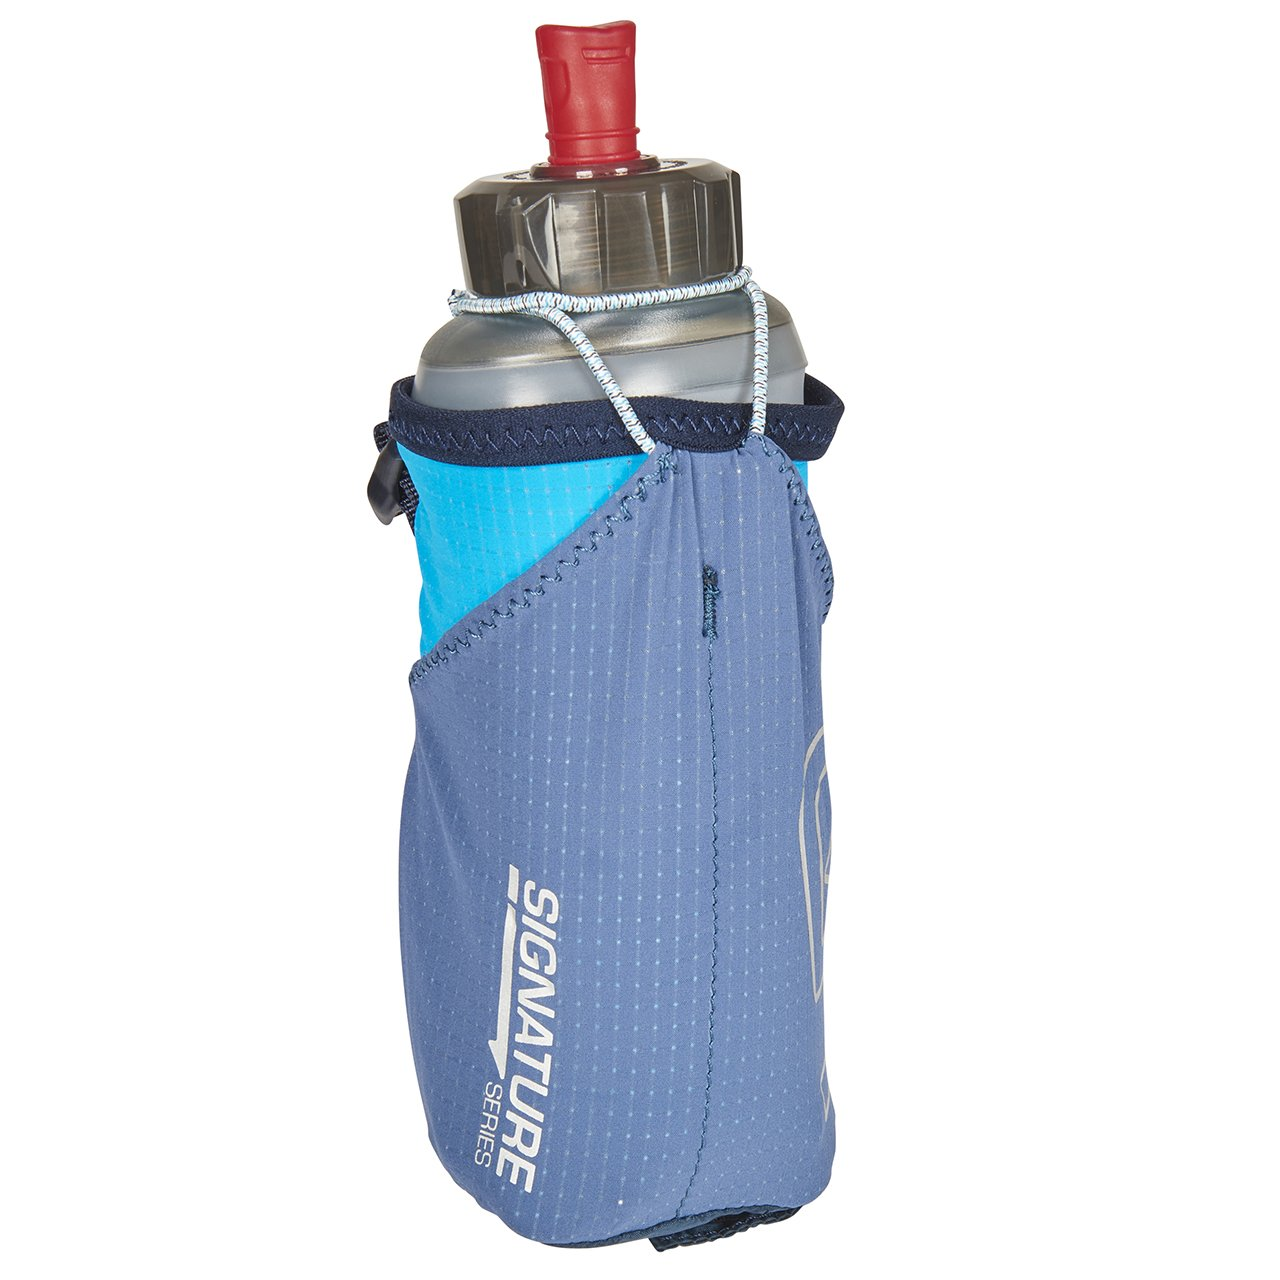 Ultimate Direction EDC (Every Day Clutch) Water Flask Holder, Signature Blue, OneSize by Ultimate Direction (Image #1)